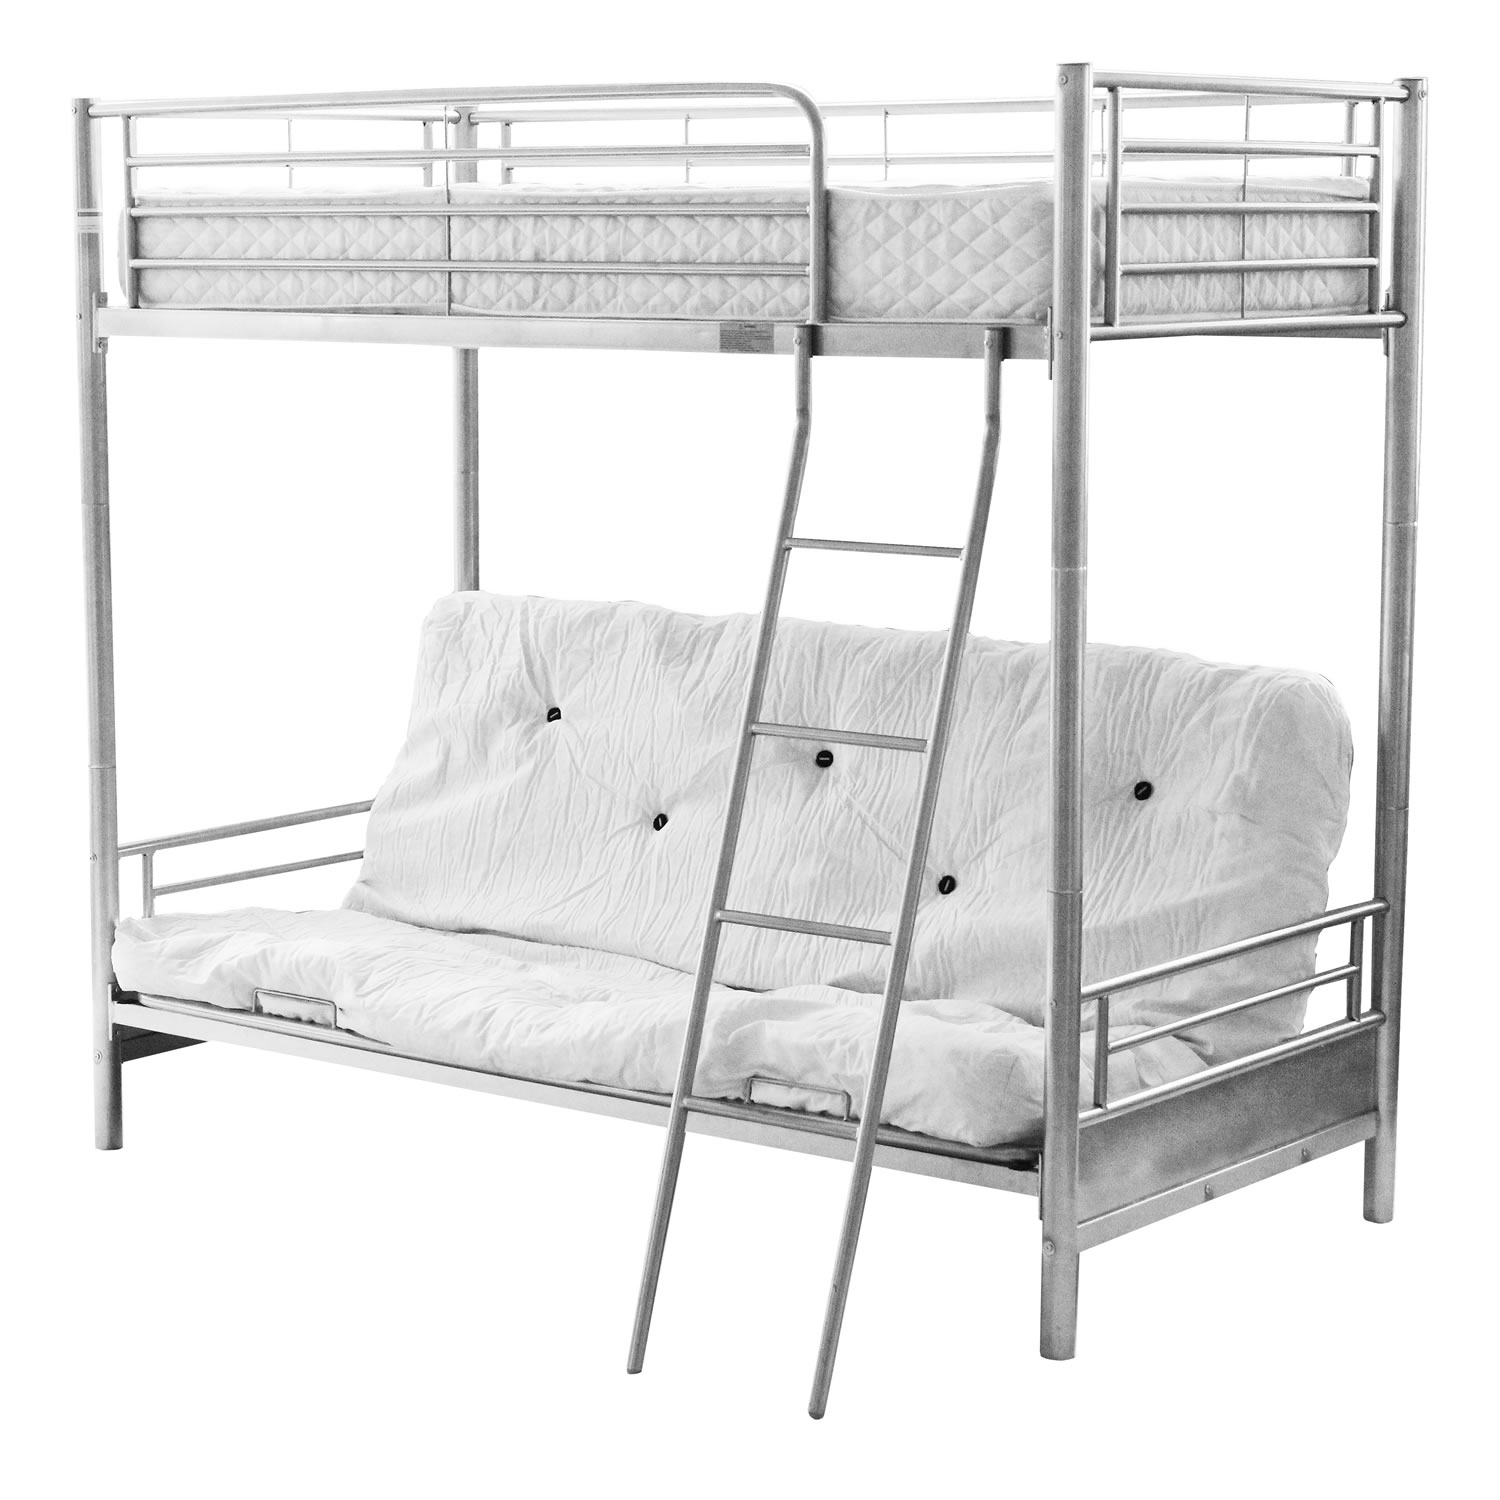 Permalink to Metal Bunk Bed Frame With Futon